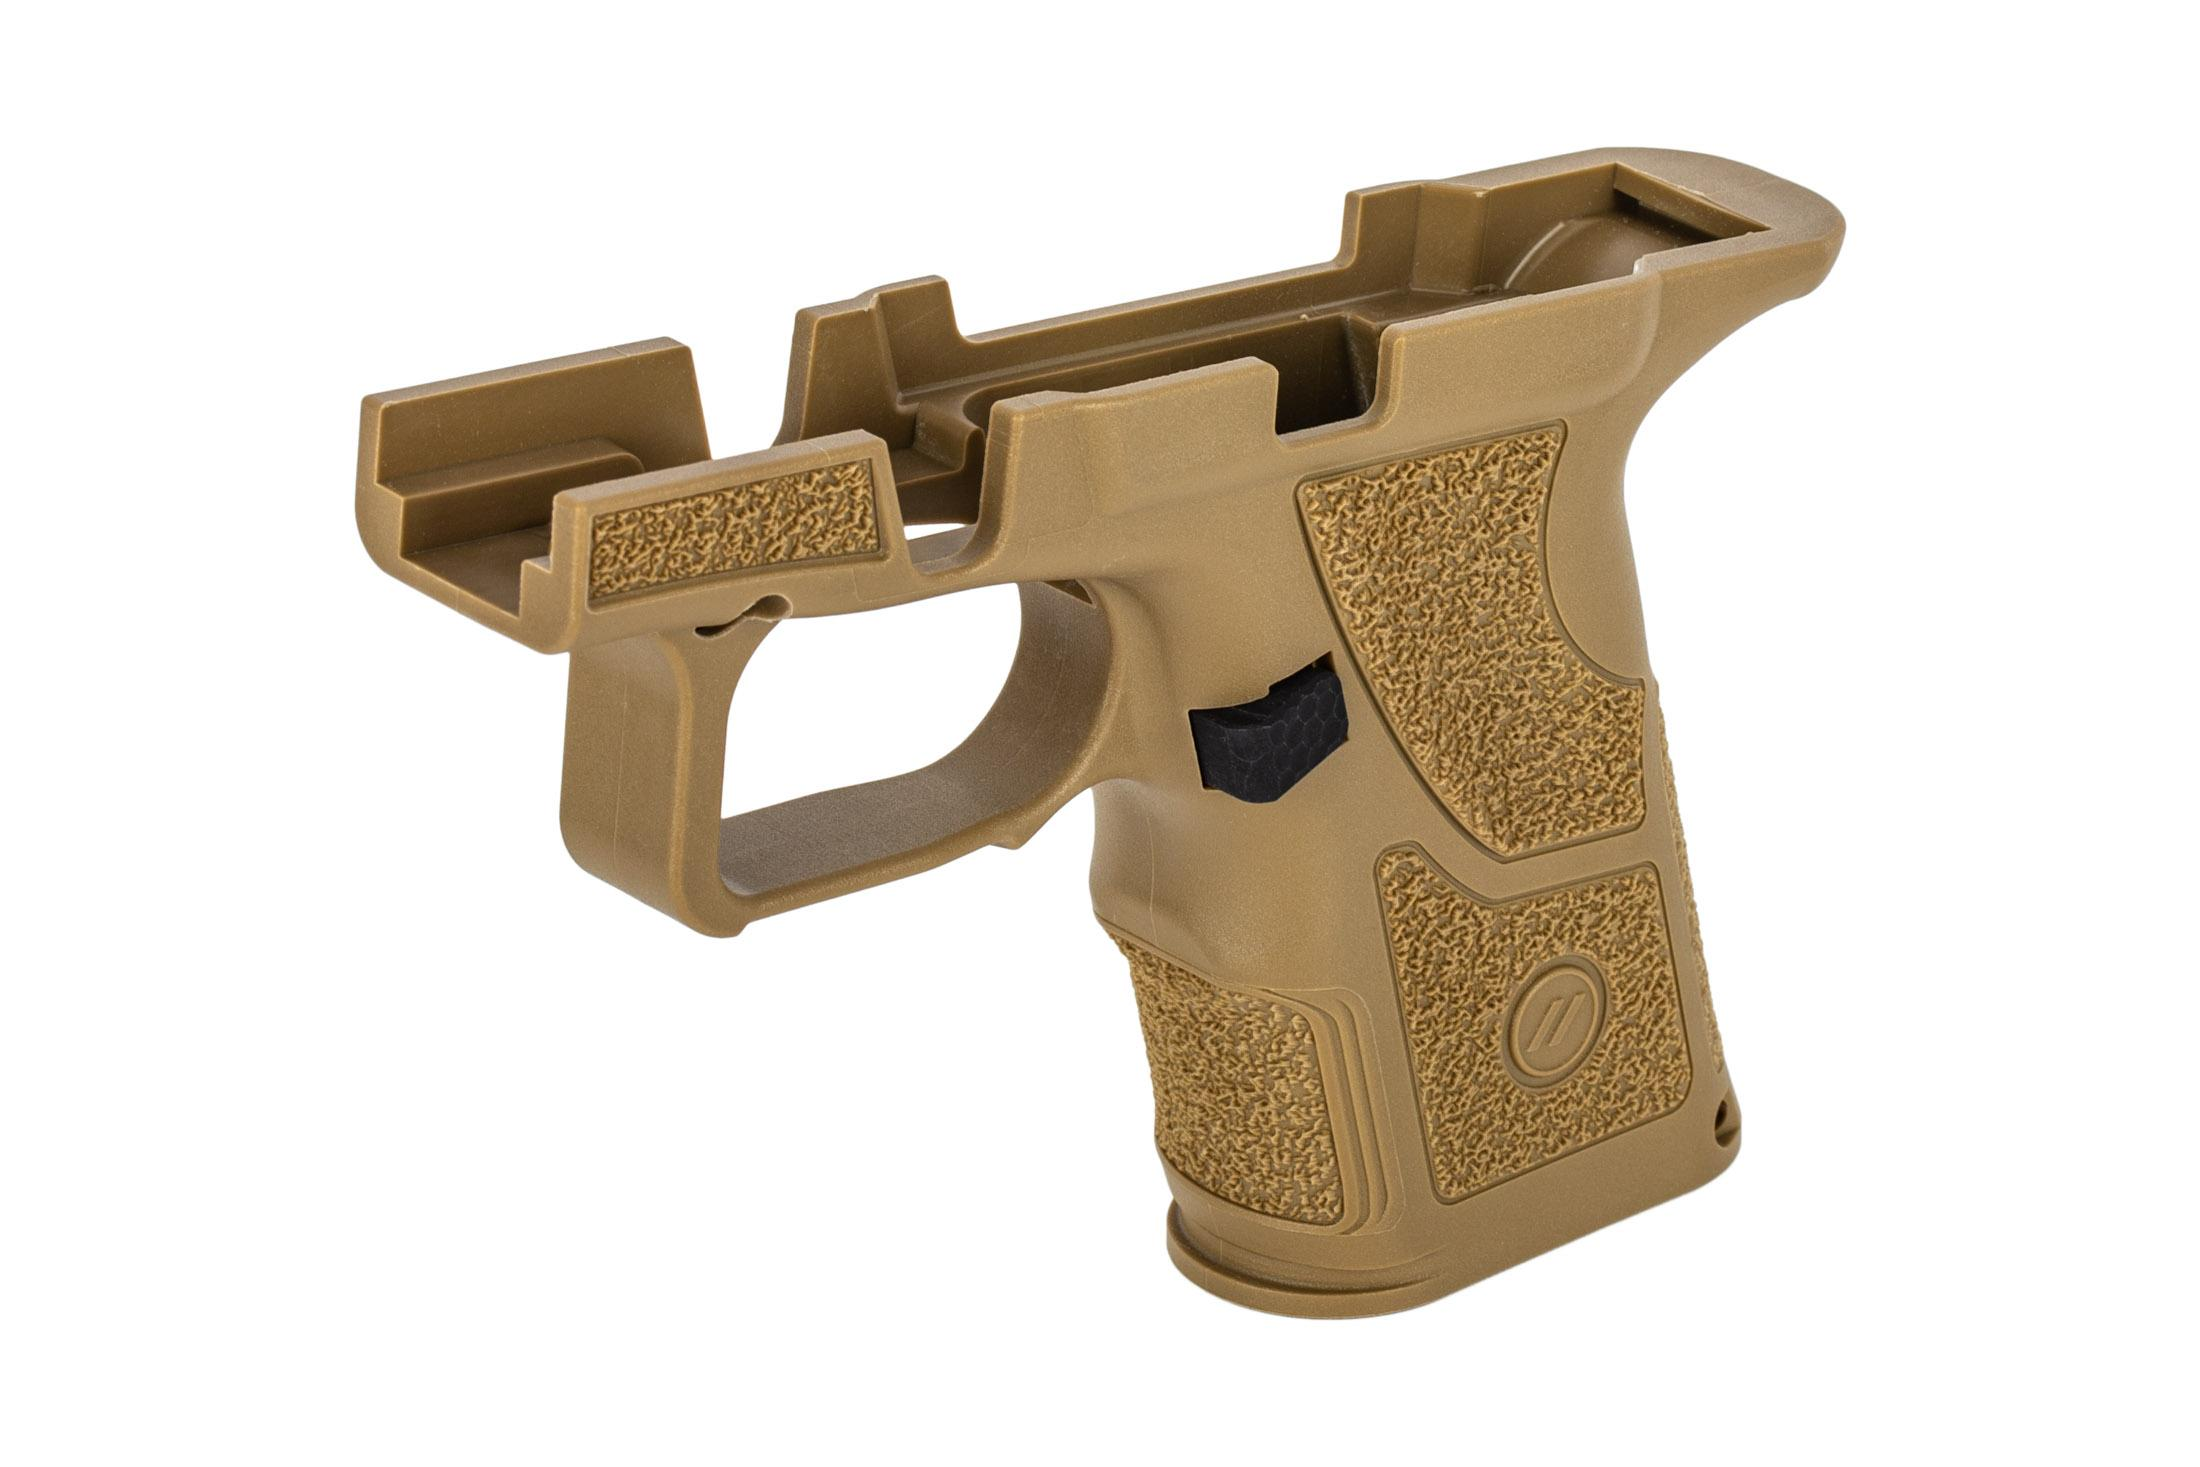 Zev Technologies OZ9c Compact Grip Kit comes with a magazine release installed